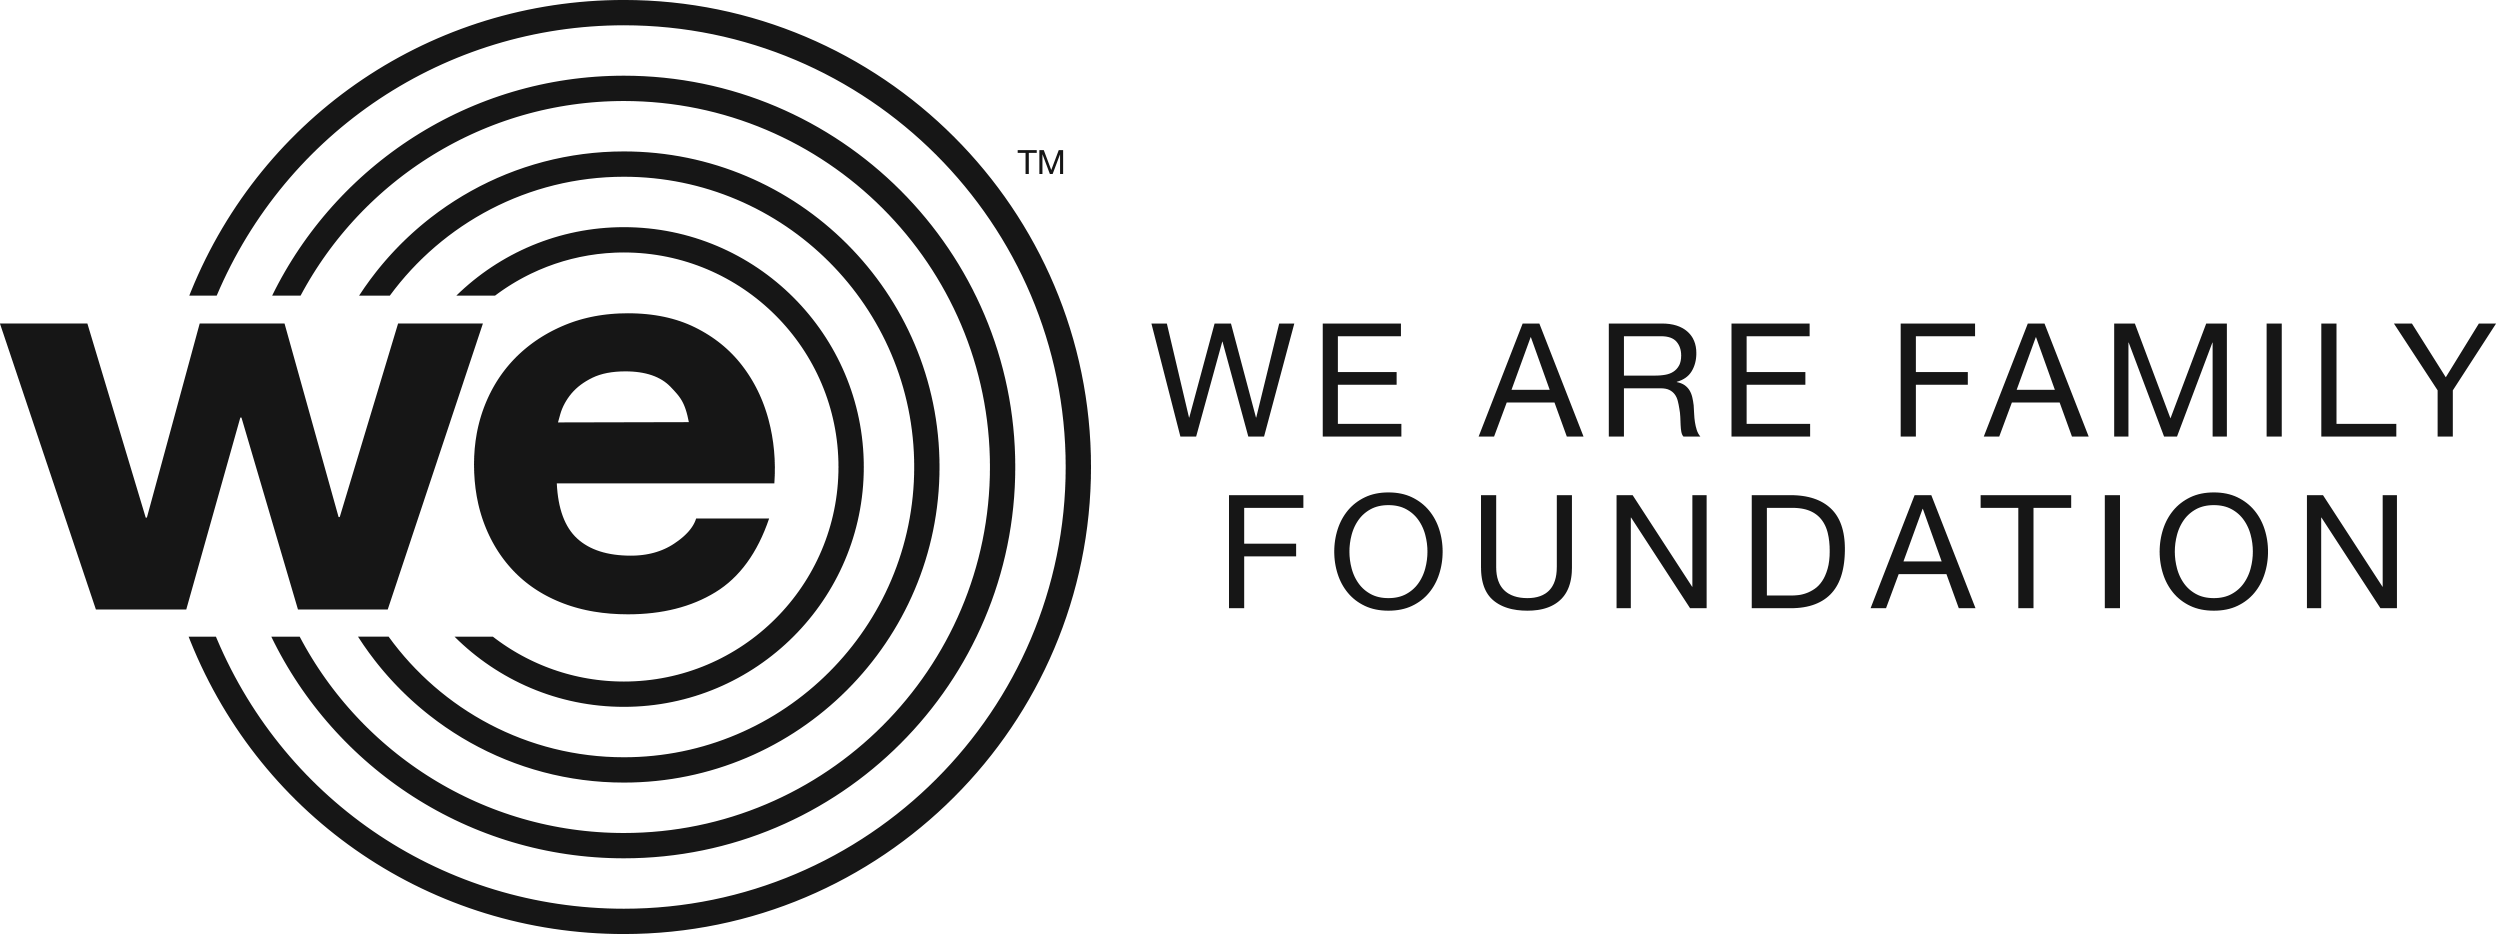 We Are Family Foundation Application Portal logo